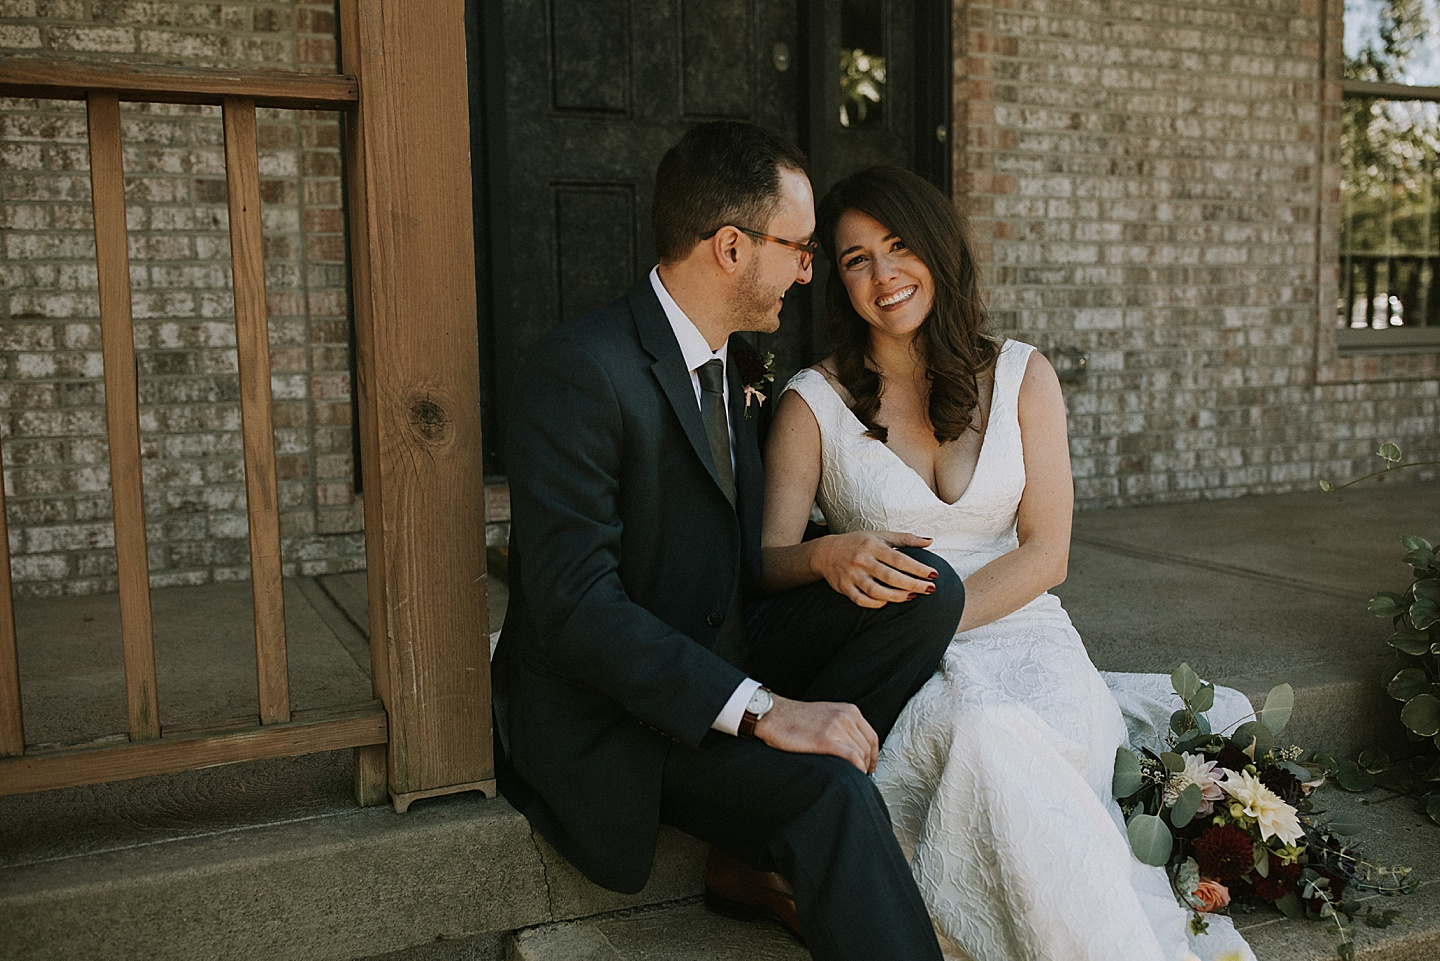 Wedding portraits on front porch of home